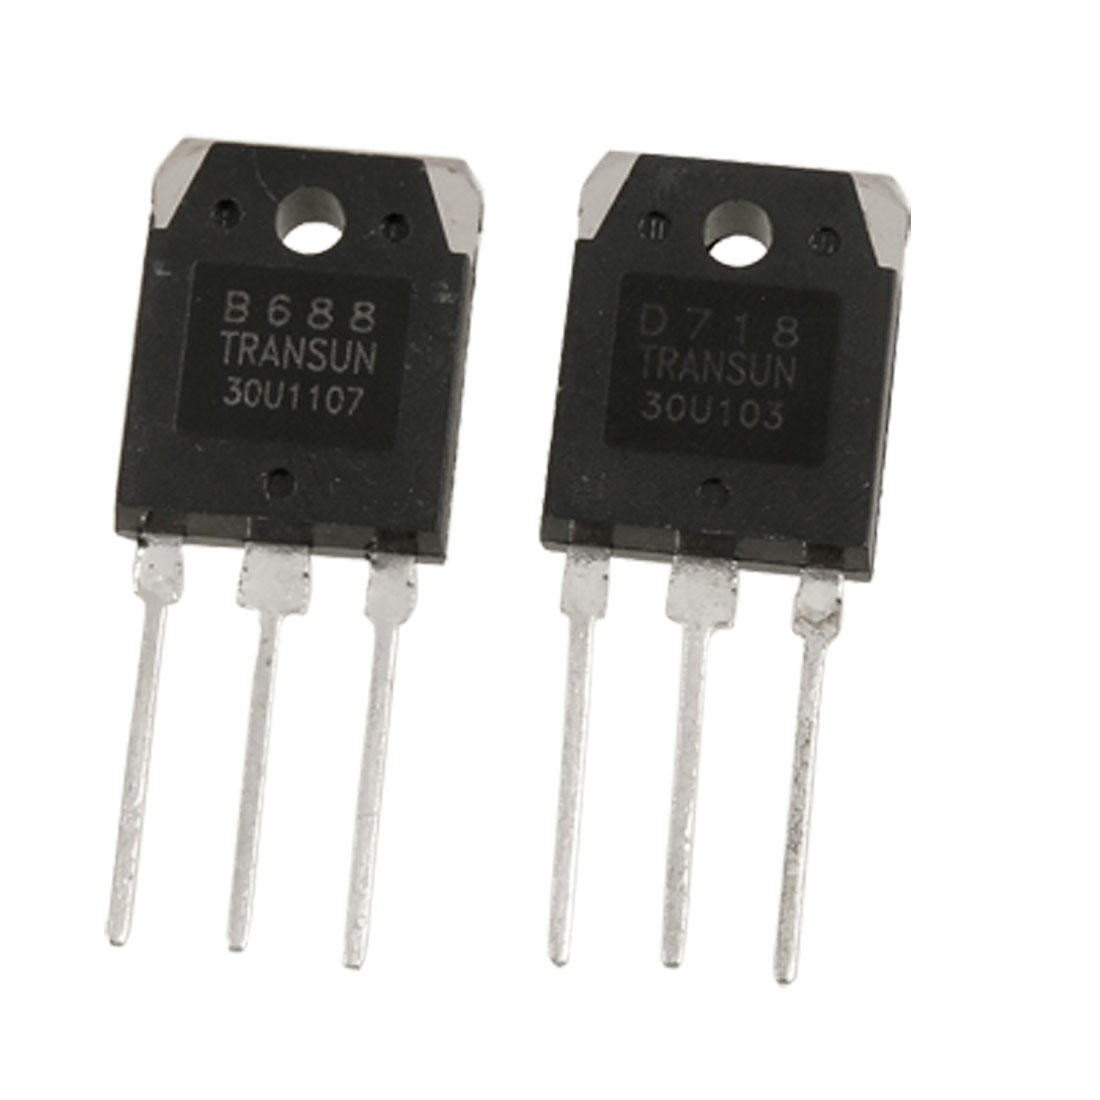 Pair 2SB688 + 2SD718 8A 200V Silicon Power Transistors